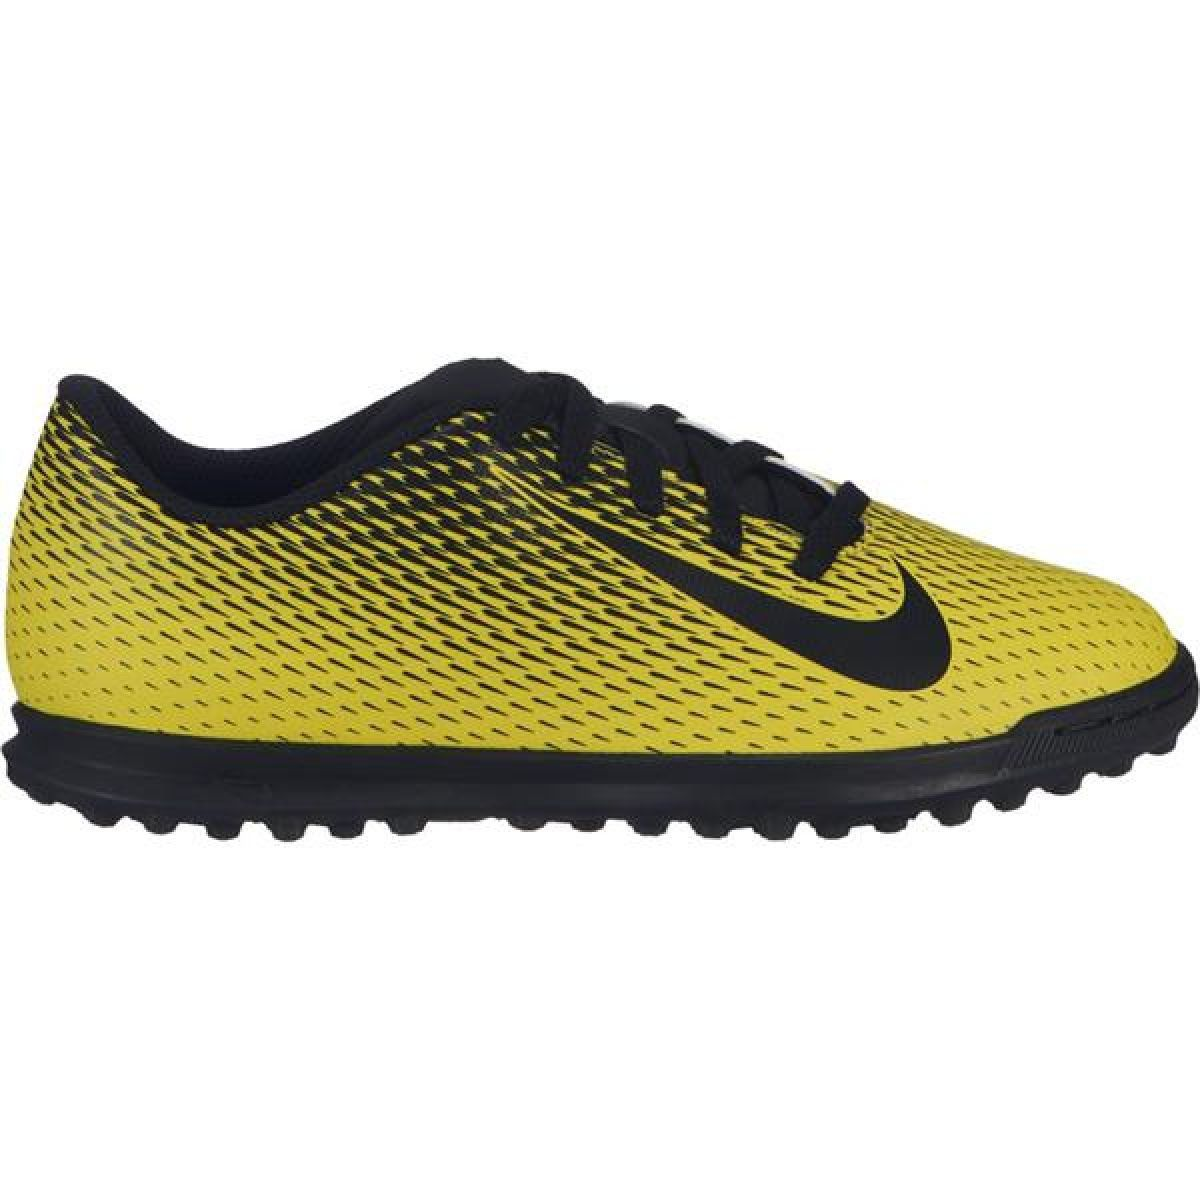 hélice Diversidad estilo  Football shoes Nike Bravatax Ii Tf Jr 844440-701 yellow yellow | Nike,  Football shoes, Boys football boots